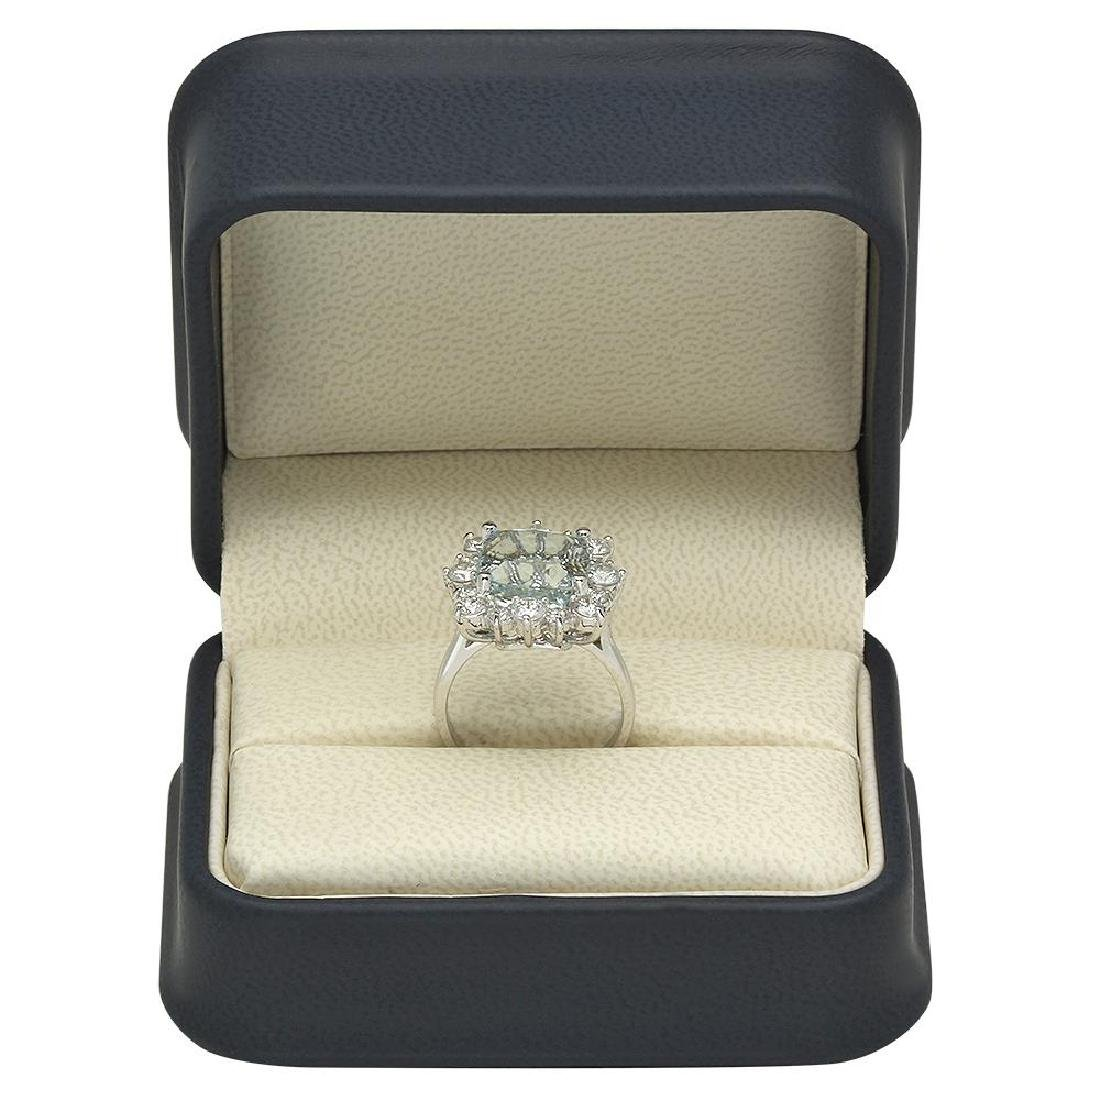 14K Gold 5.79ct Aquamarine 1.44ct Diamond Ring - 4